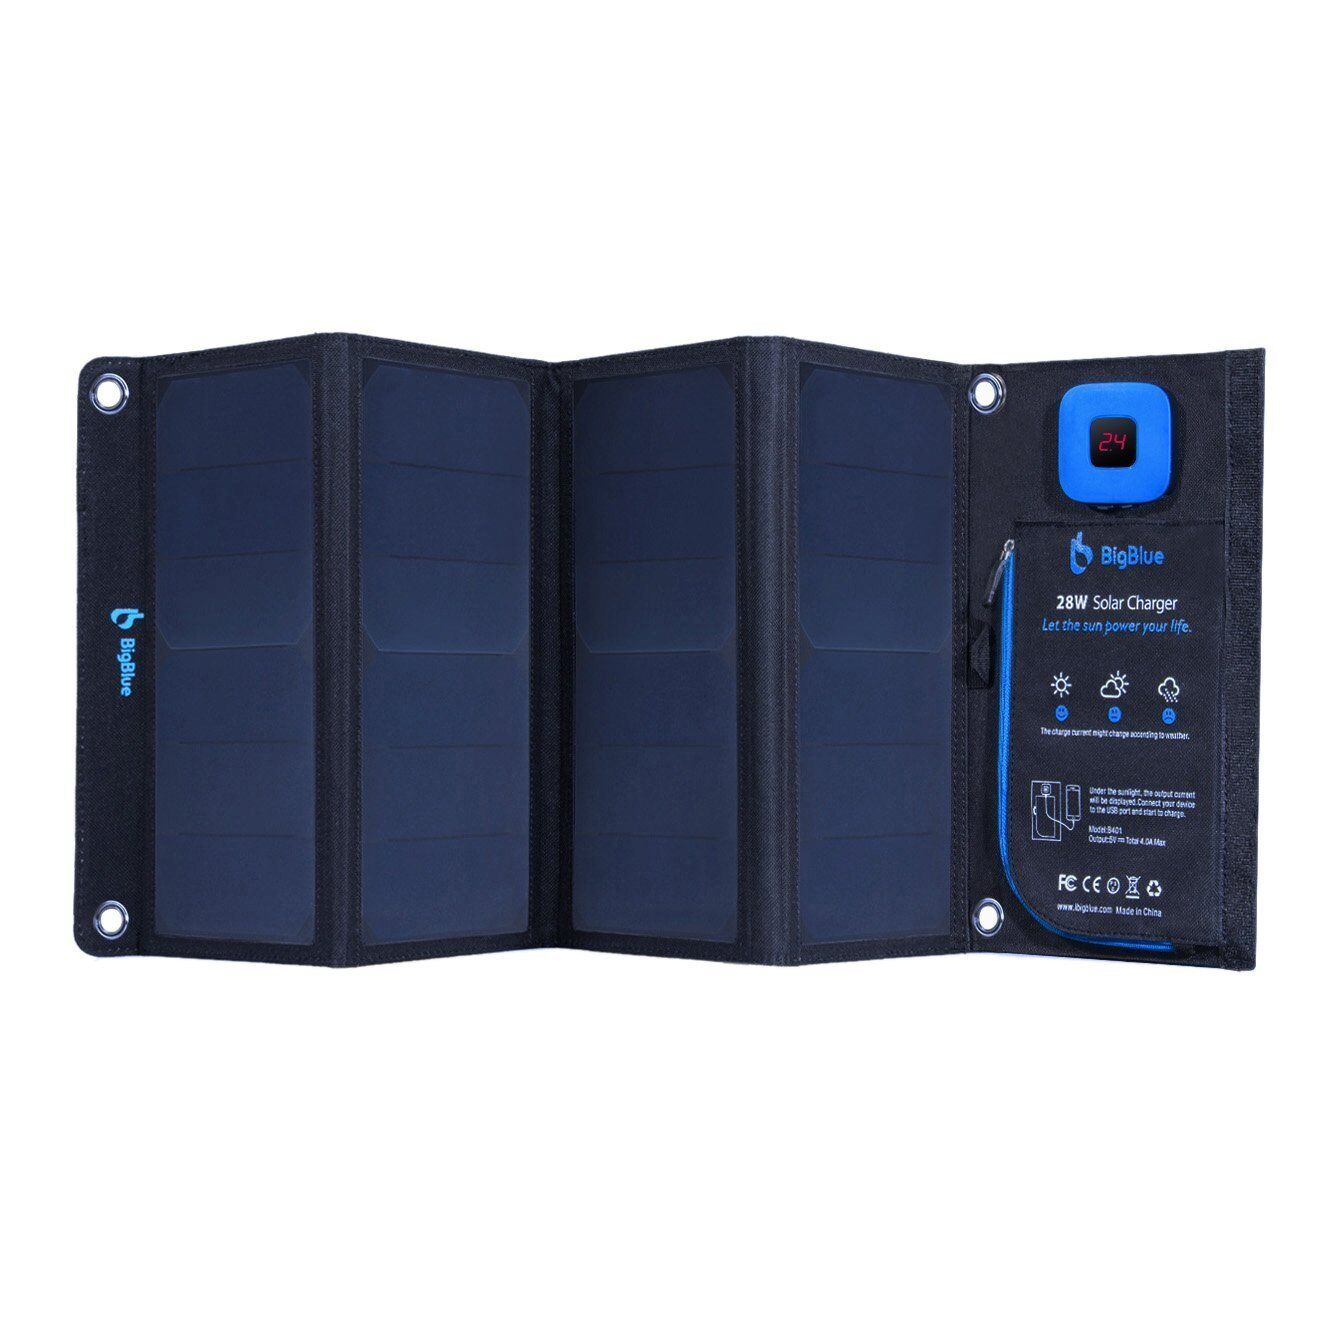 NEW BIGBlau 28W SOLAR PANEL CHARGER W/ DUAL USB FOR IPHONE, GALAXY & MORE